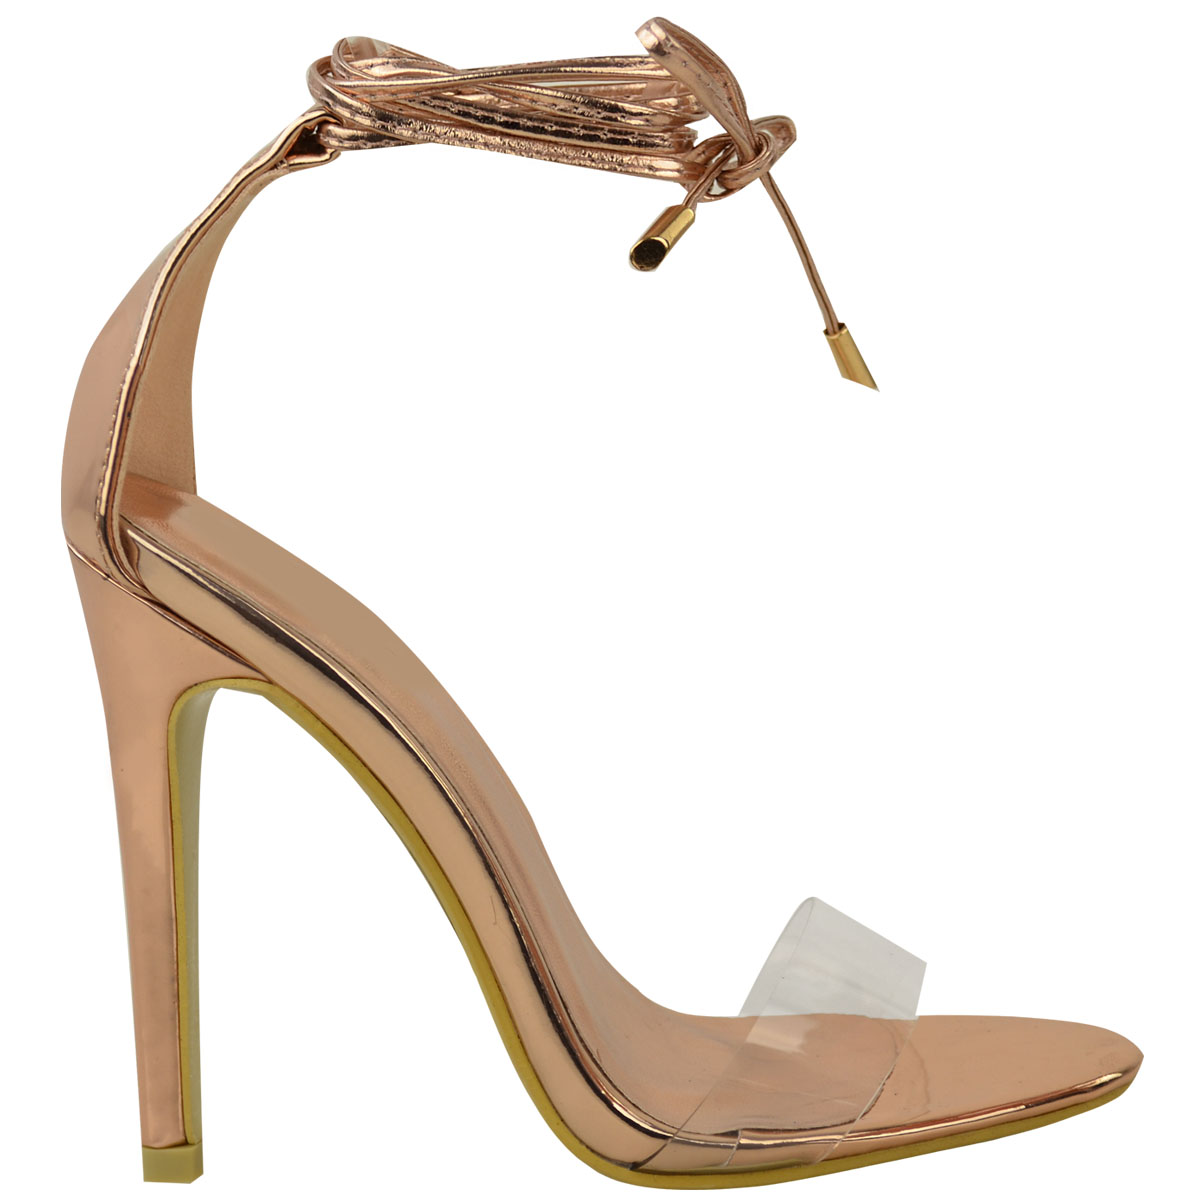 Womens Ladies High Heel Barely There Clear Perspex Ankle Strappy Sandals Size UK